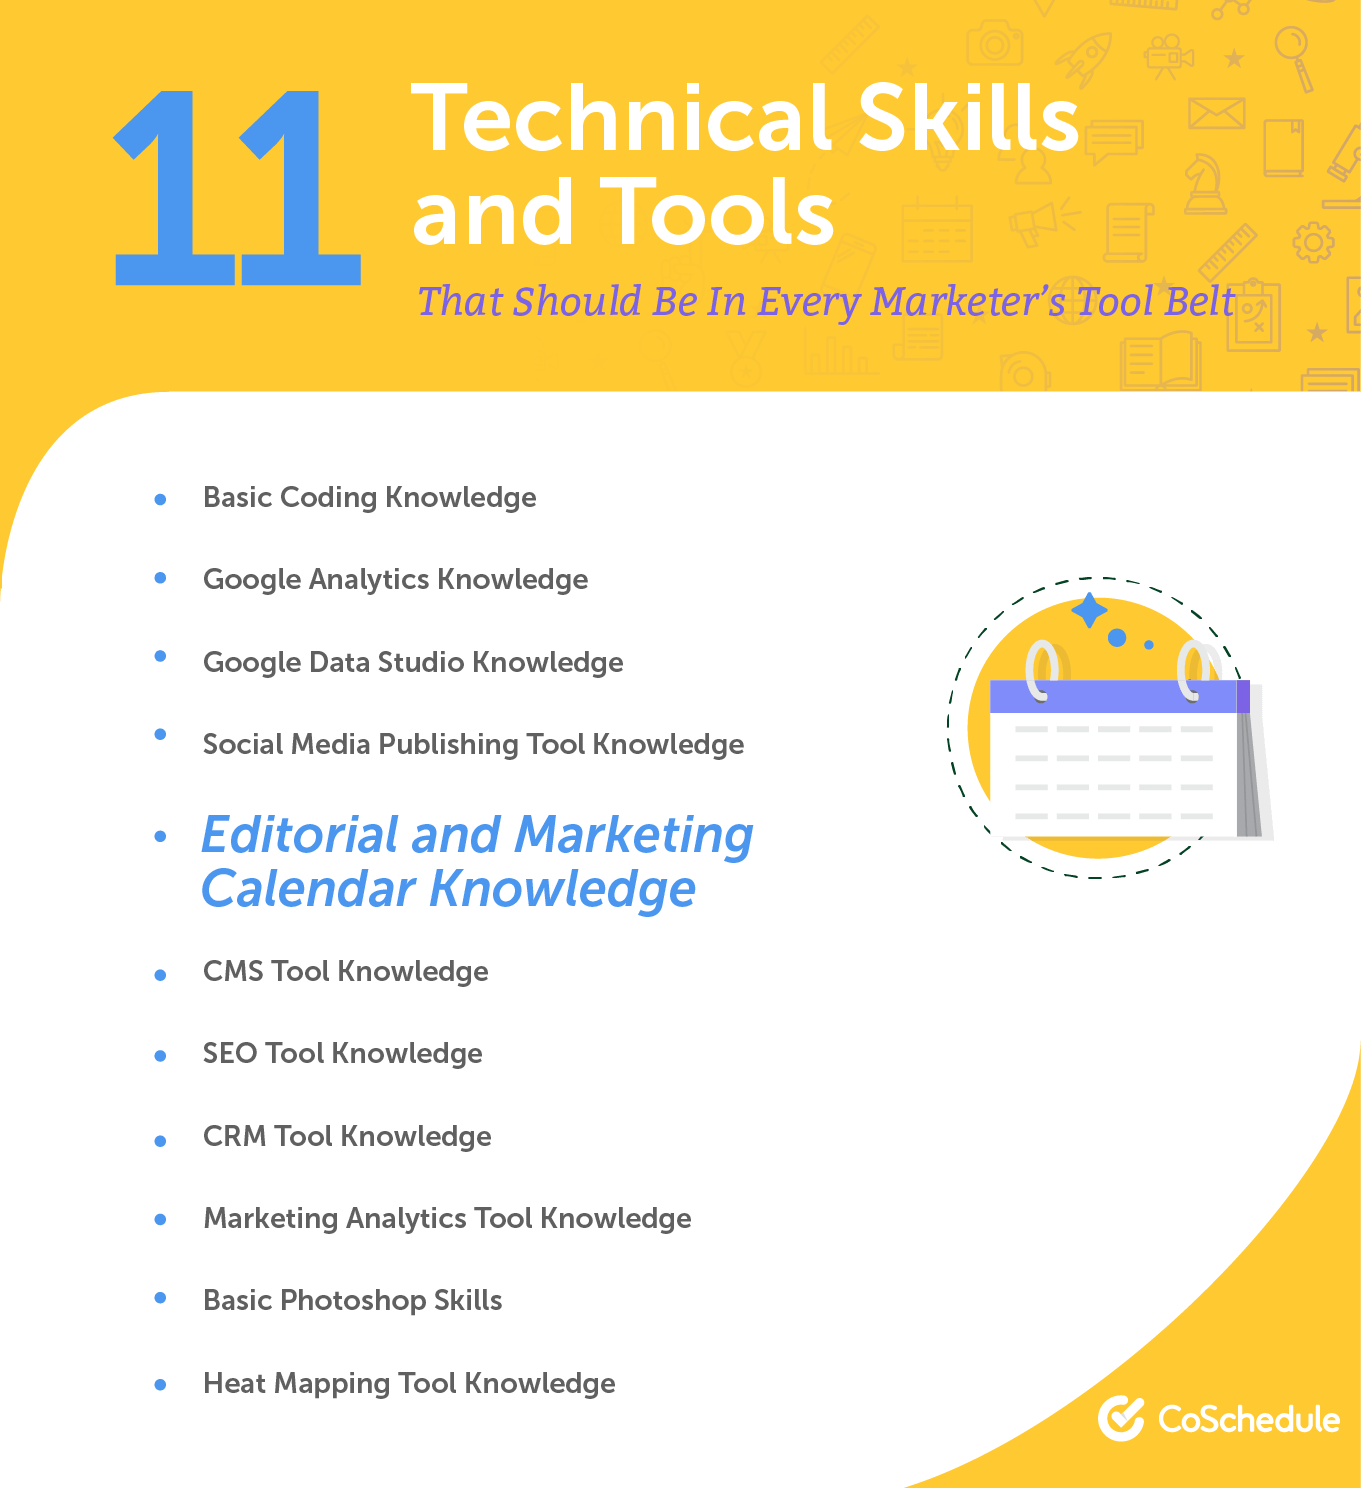 11 technical skills and tools that should be in every marketers tool belt.